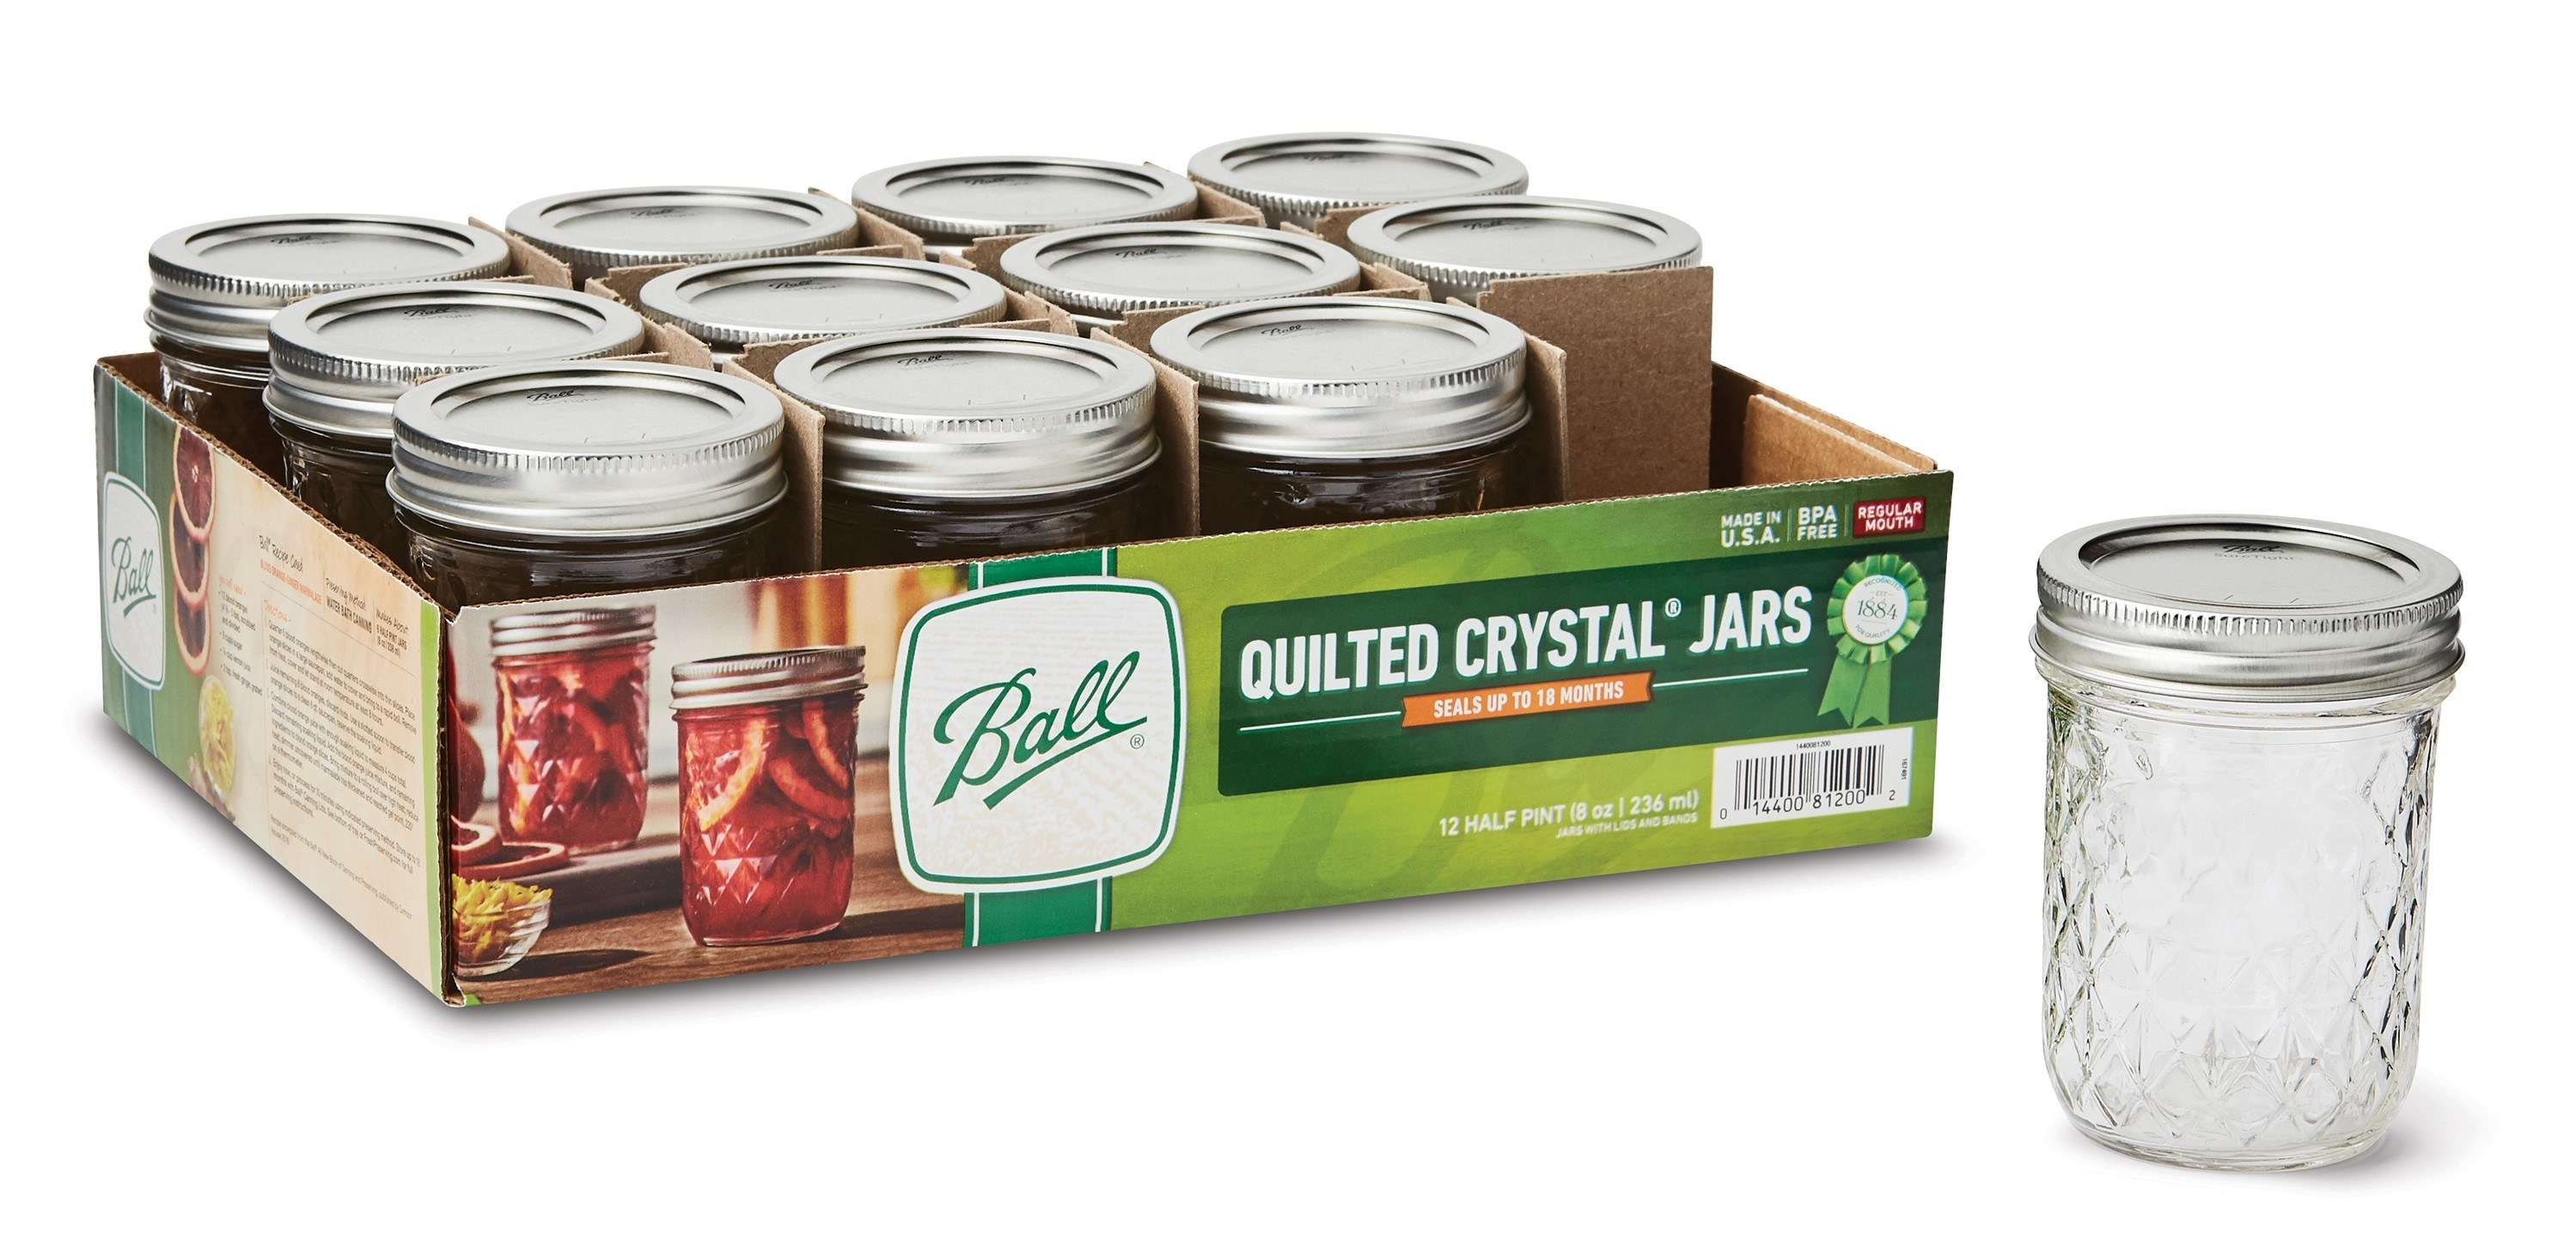 The set of mason jars in a box, with one removed and set aside to demonstrate the diamond-cut pattern